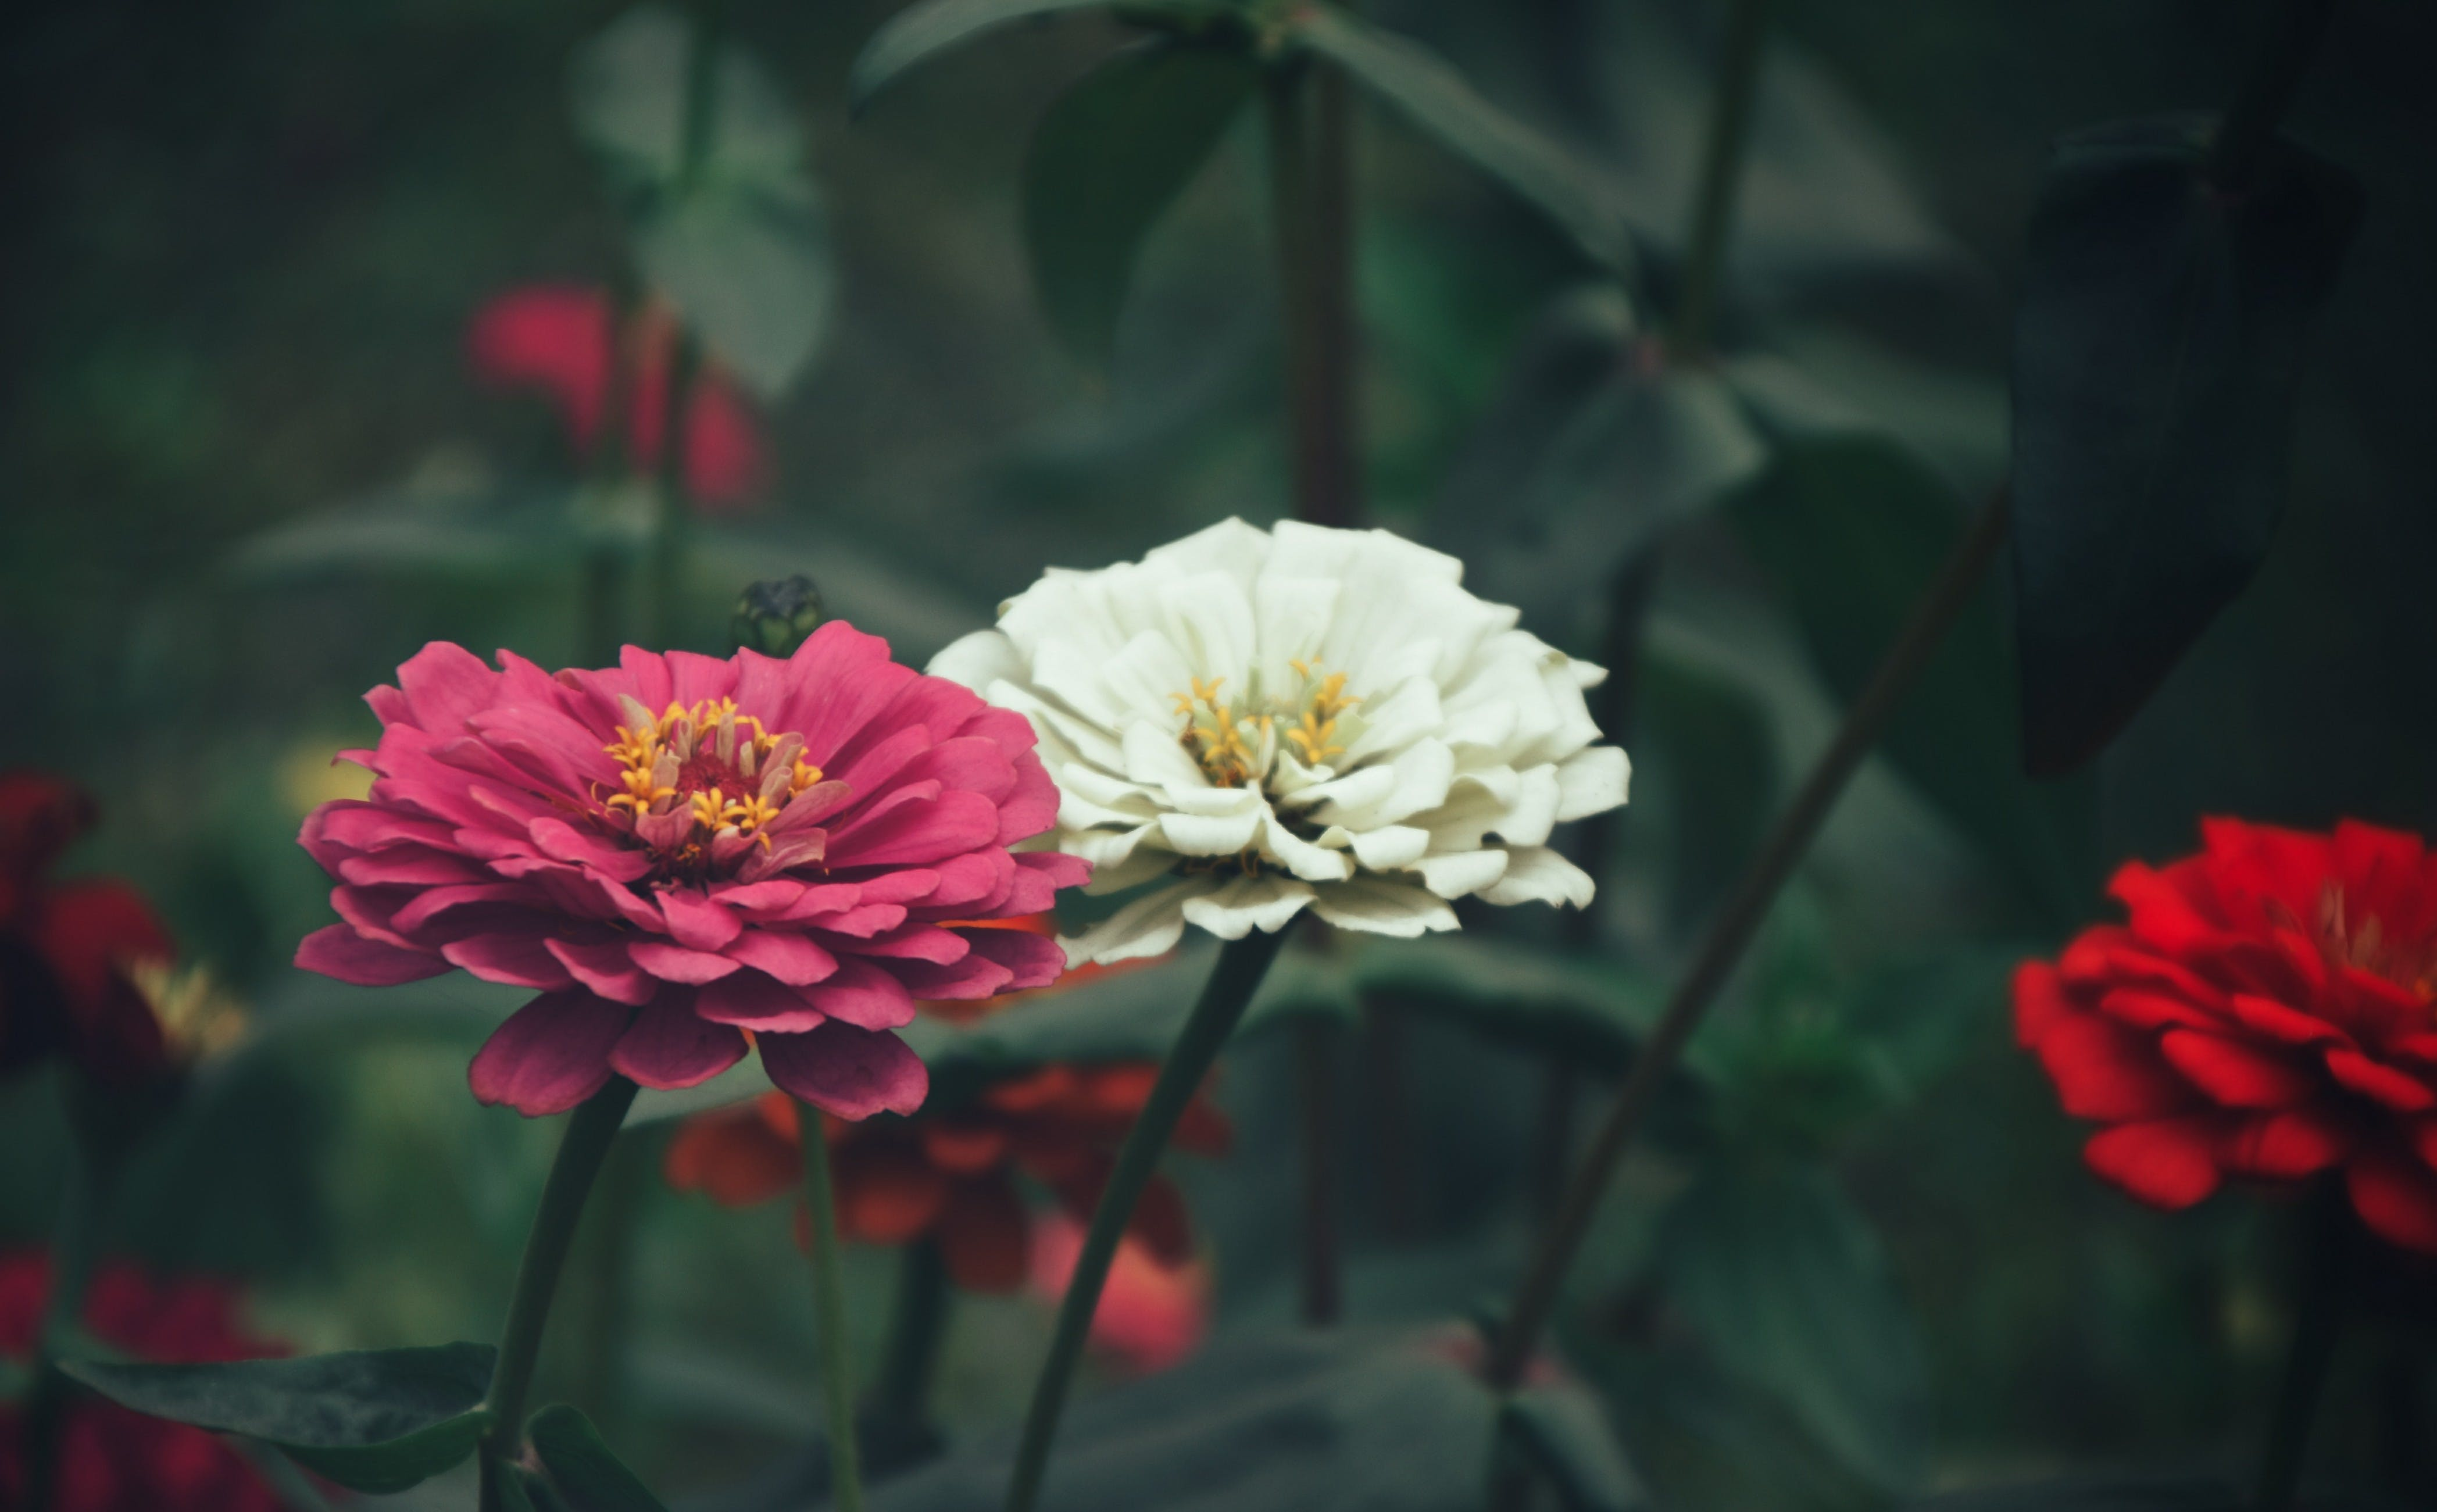 Close-Up Photography of Zinnia Flowers